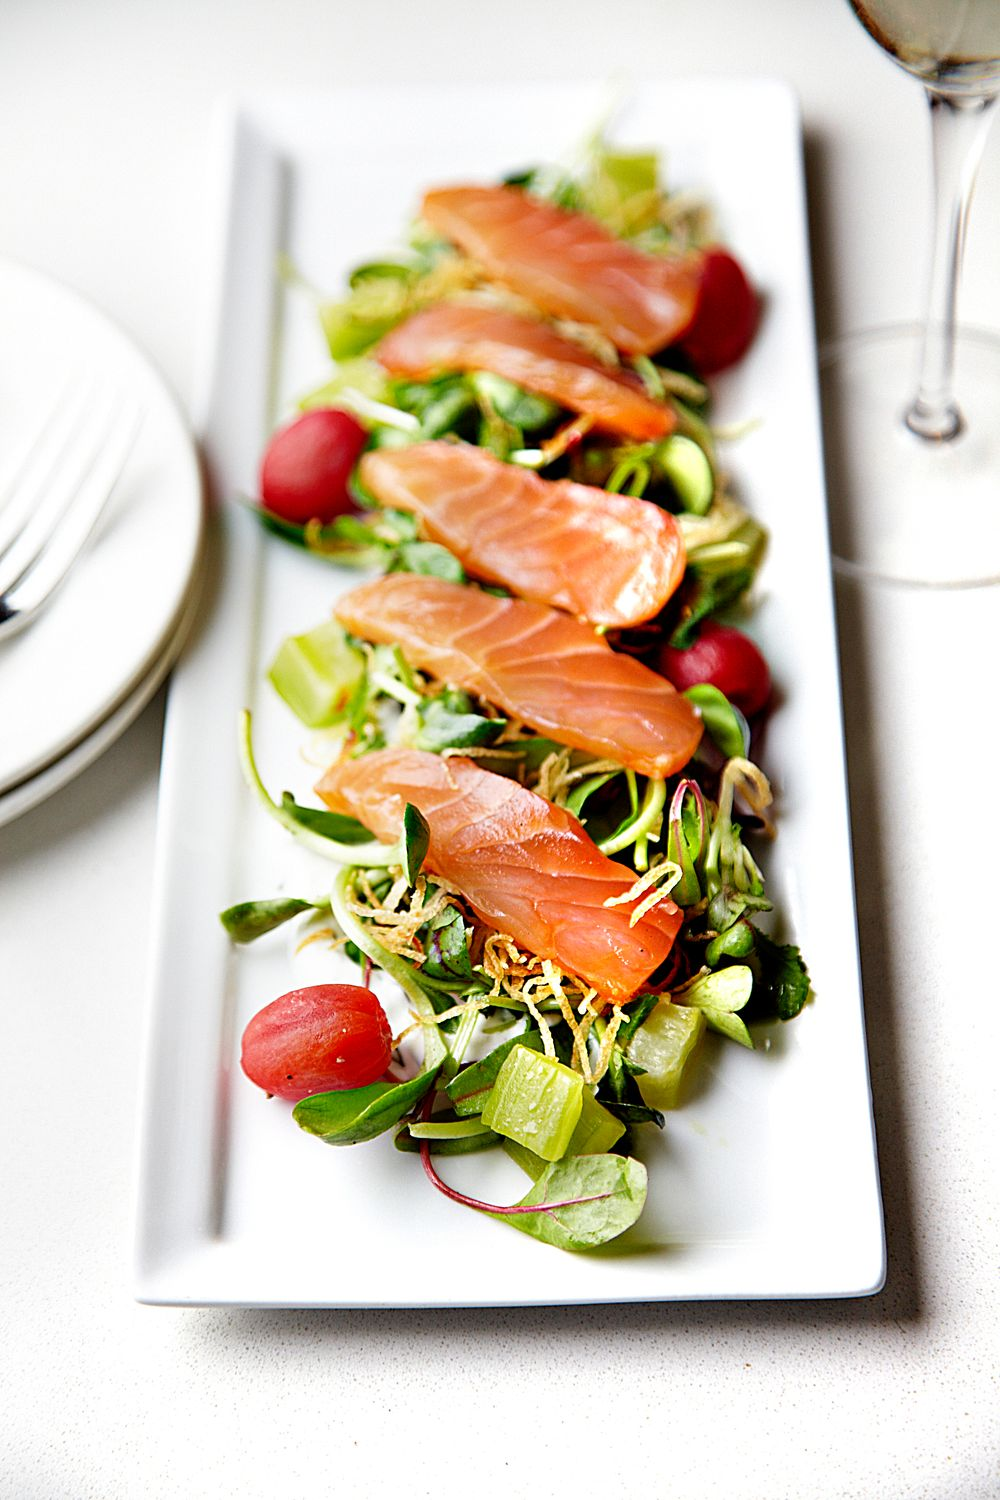 Gravlax in elegant restaurant setting.